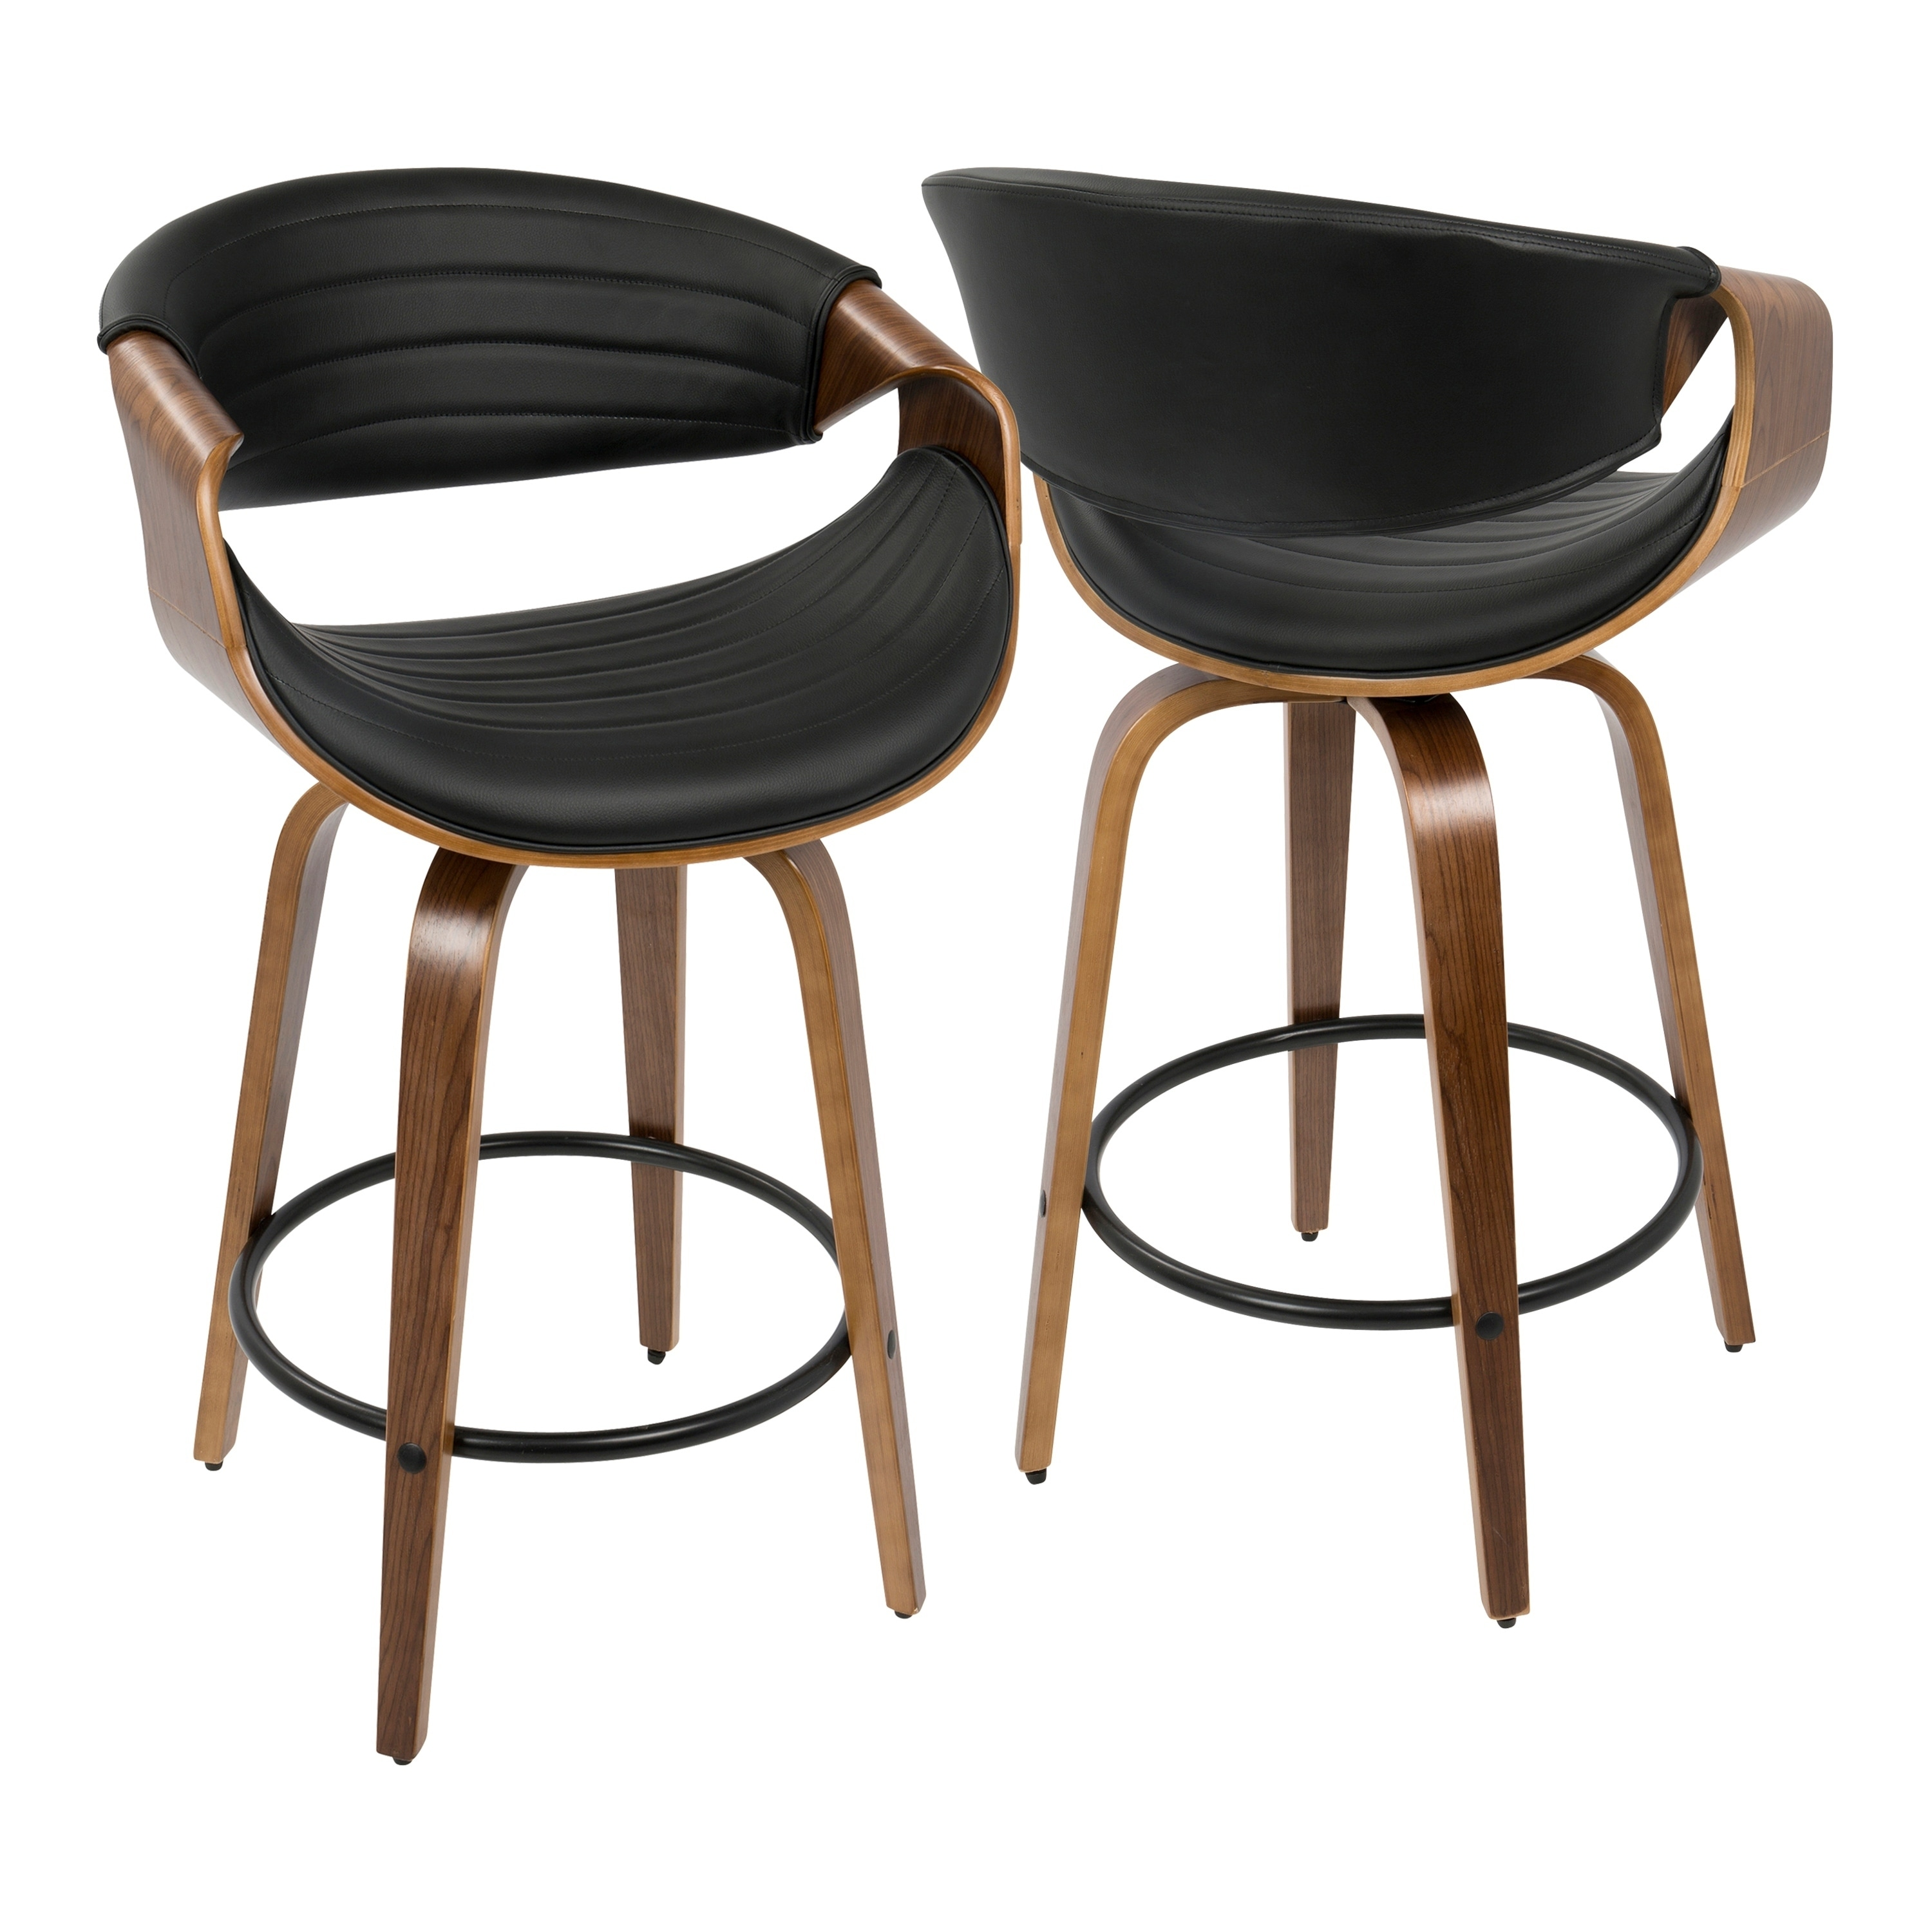 Fantastic Carson Carrington Solavagen Mid Century Modern Counter Stool Set Of 2 Squirreltailoven Fun Painted Chair Ideas Images Squirreltailovenorg